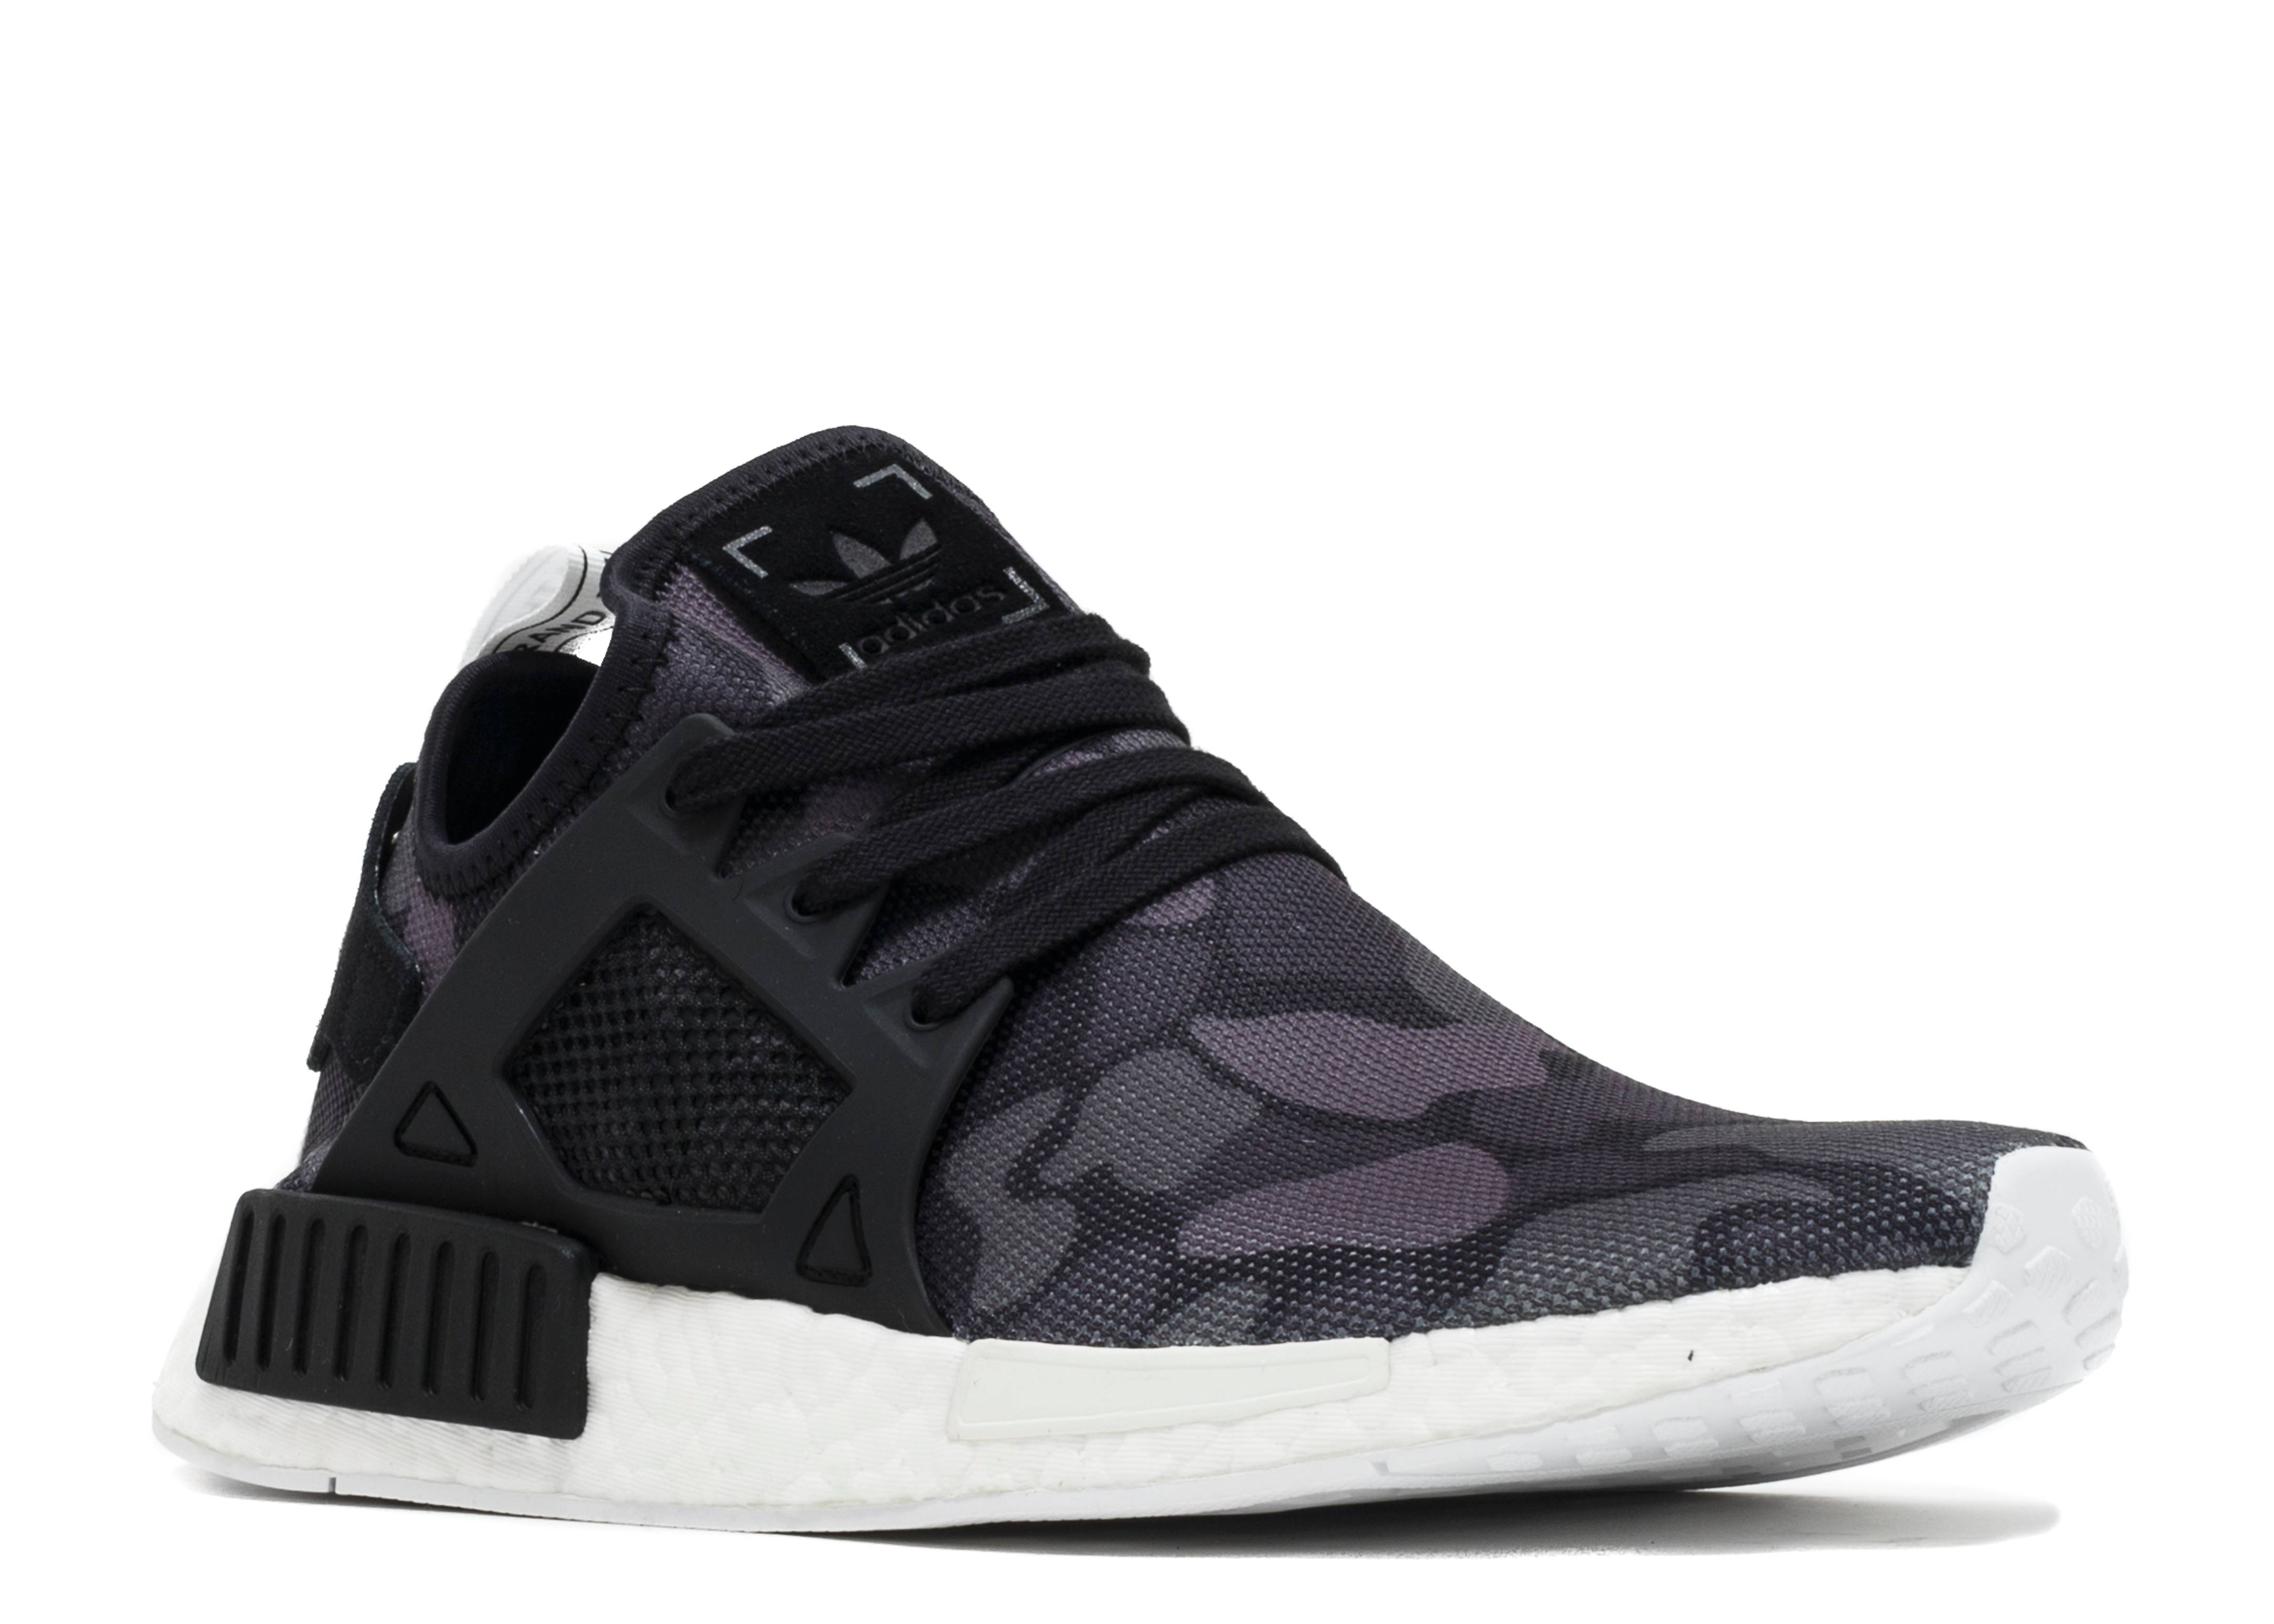 adidas outlet at camarillo ca adidas nmd xr1 pk white